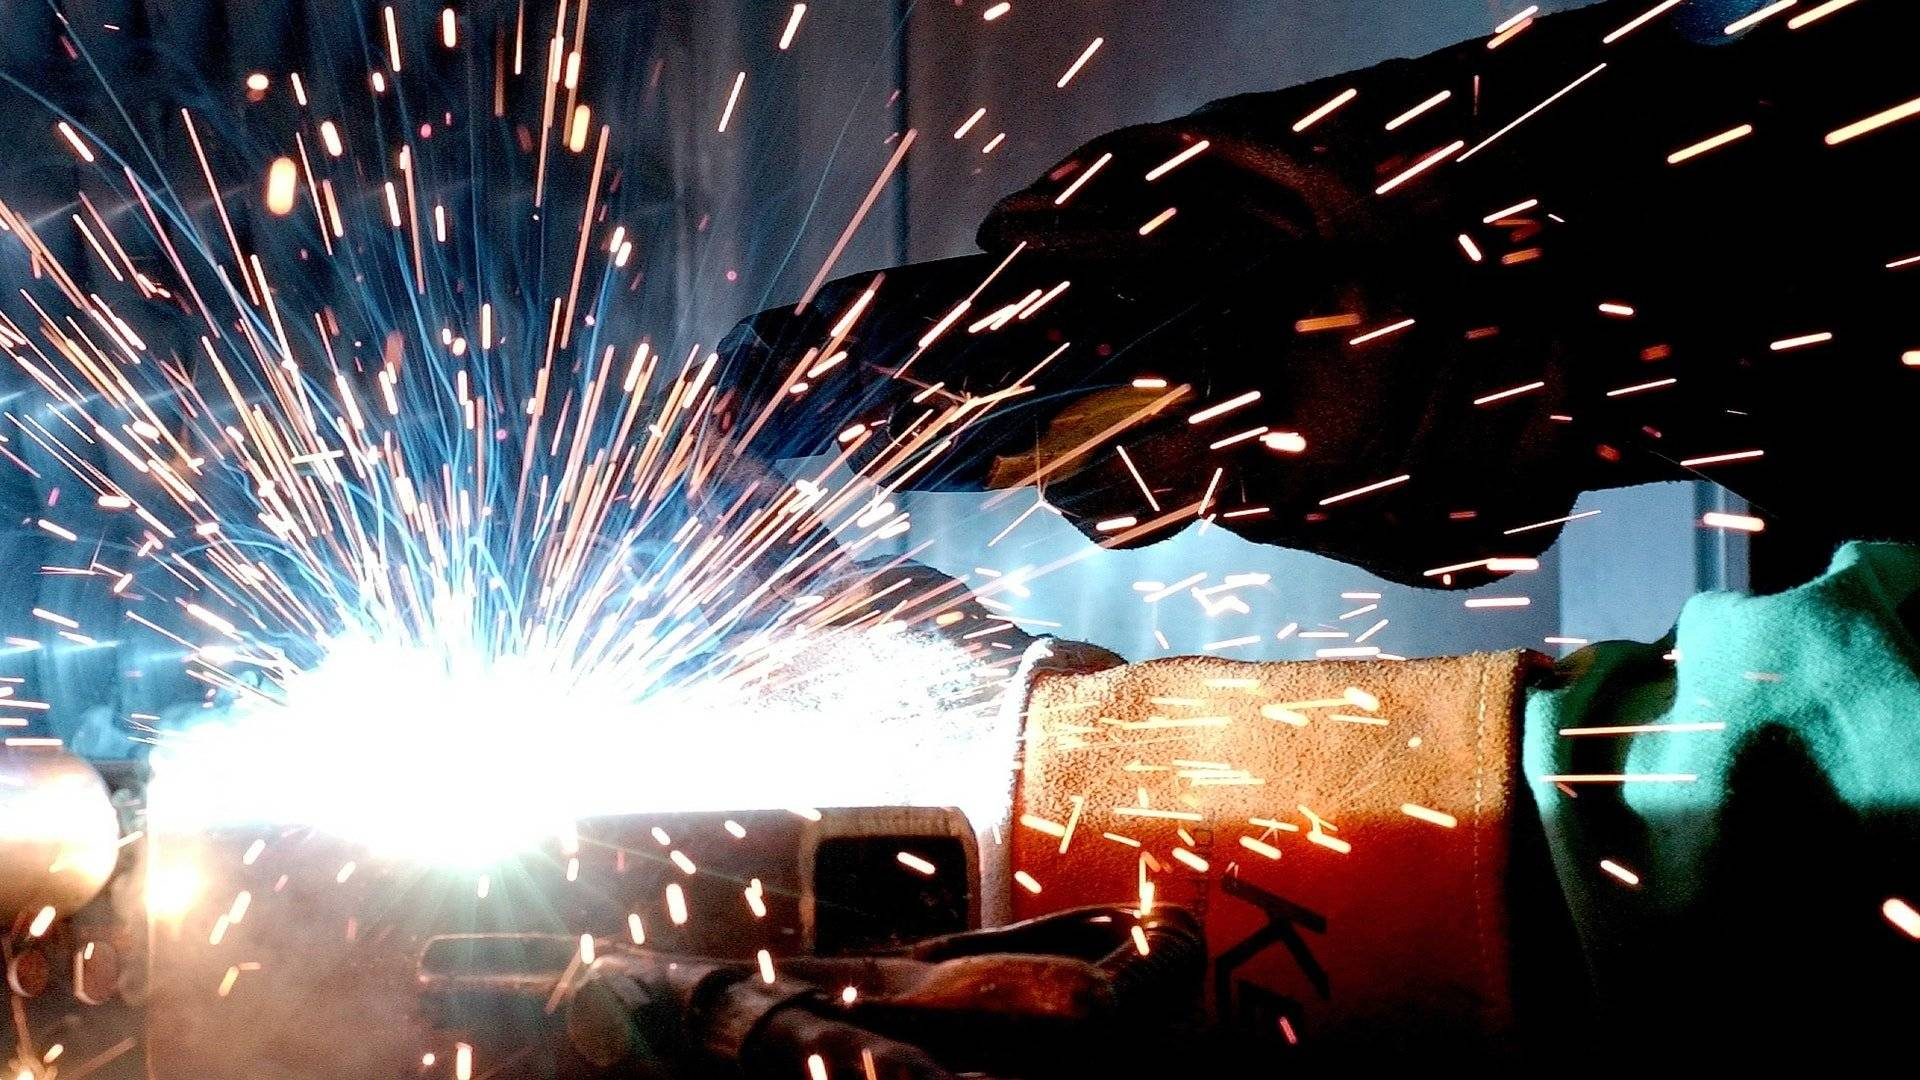 person in welding mask close to weld causes sparks